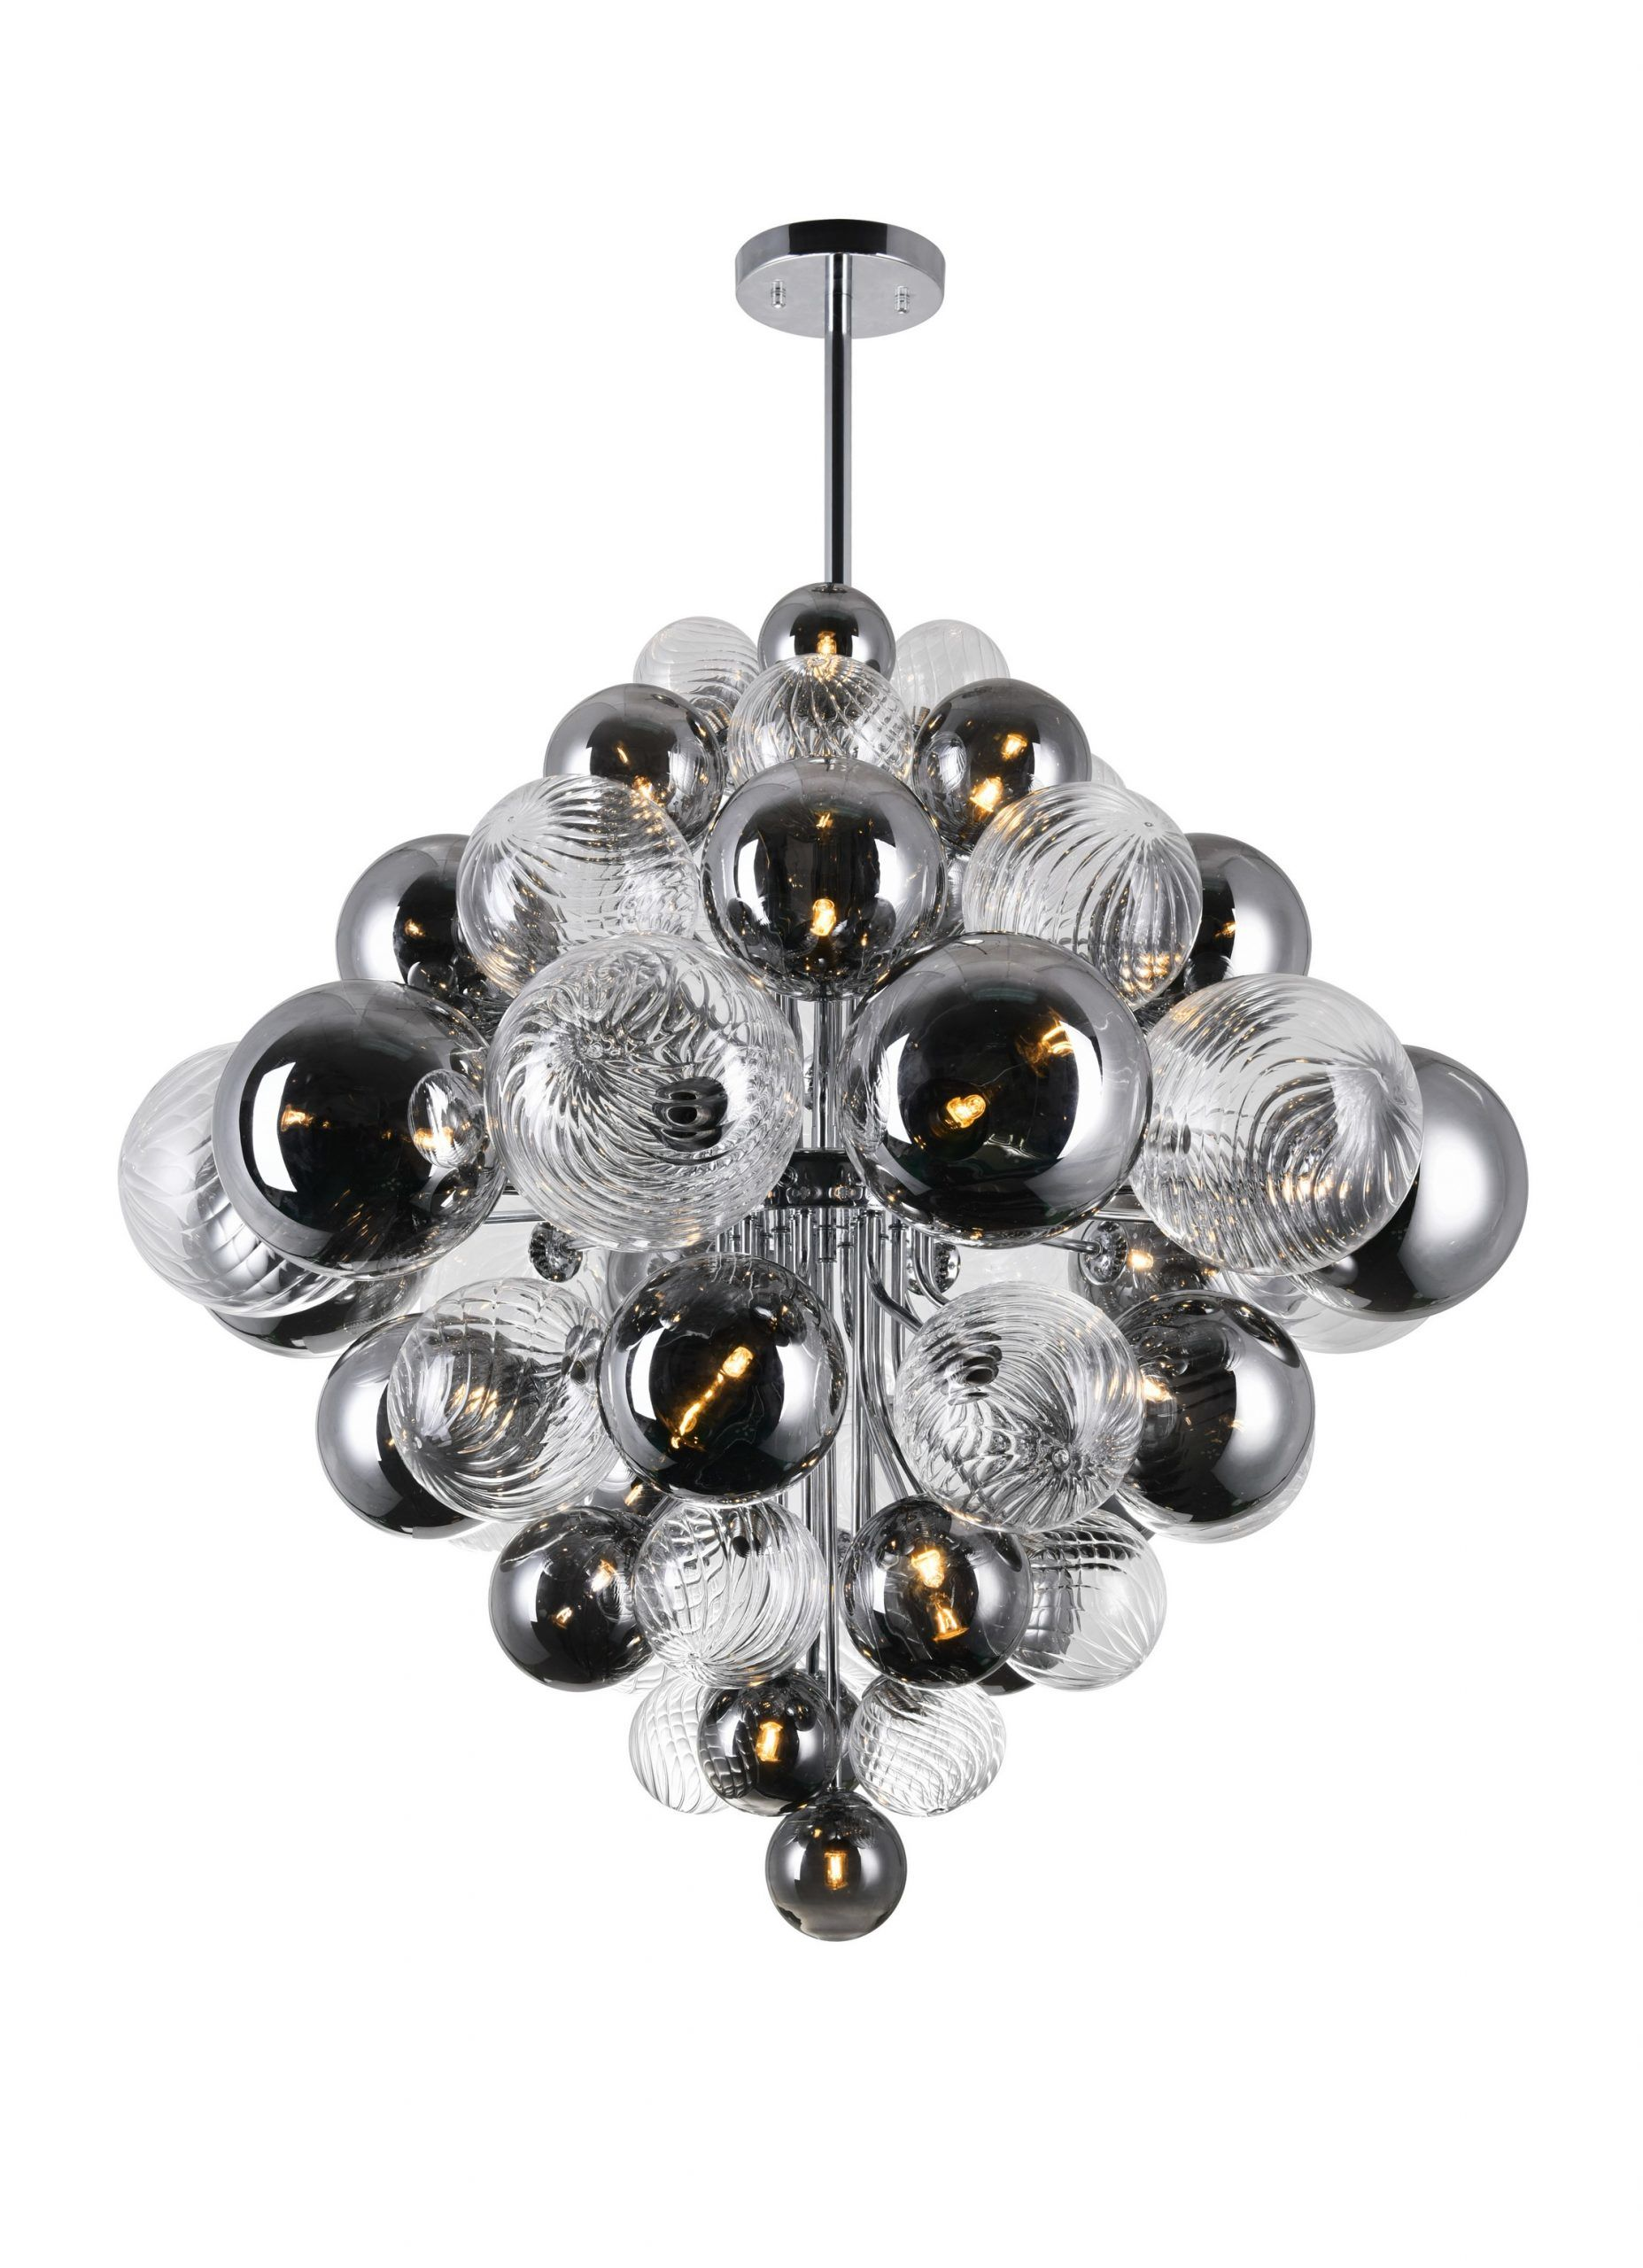 27 Light Chandelier with Chrome Finish